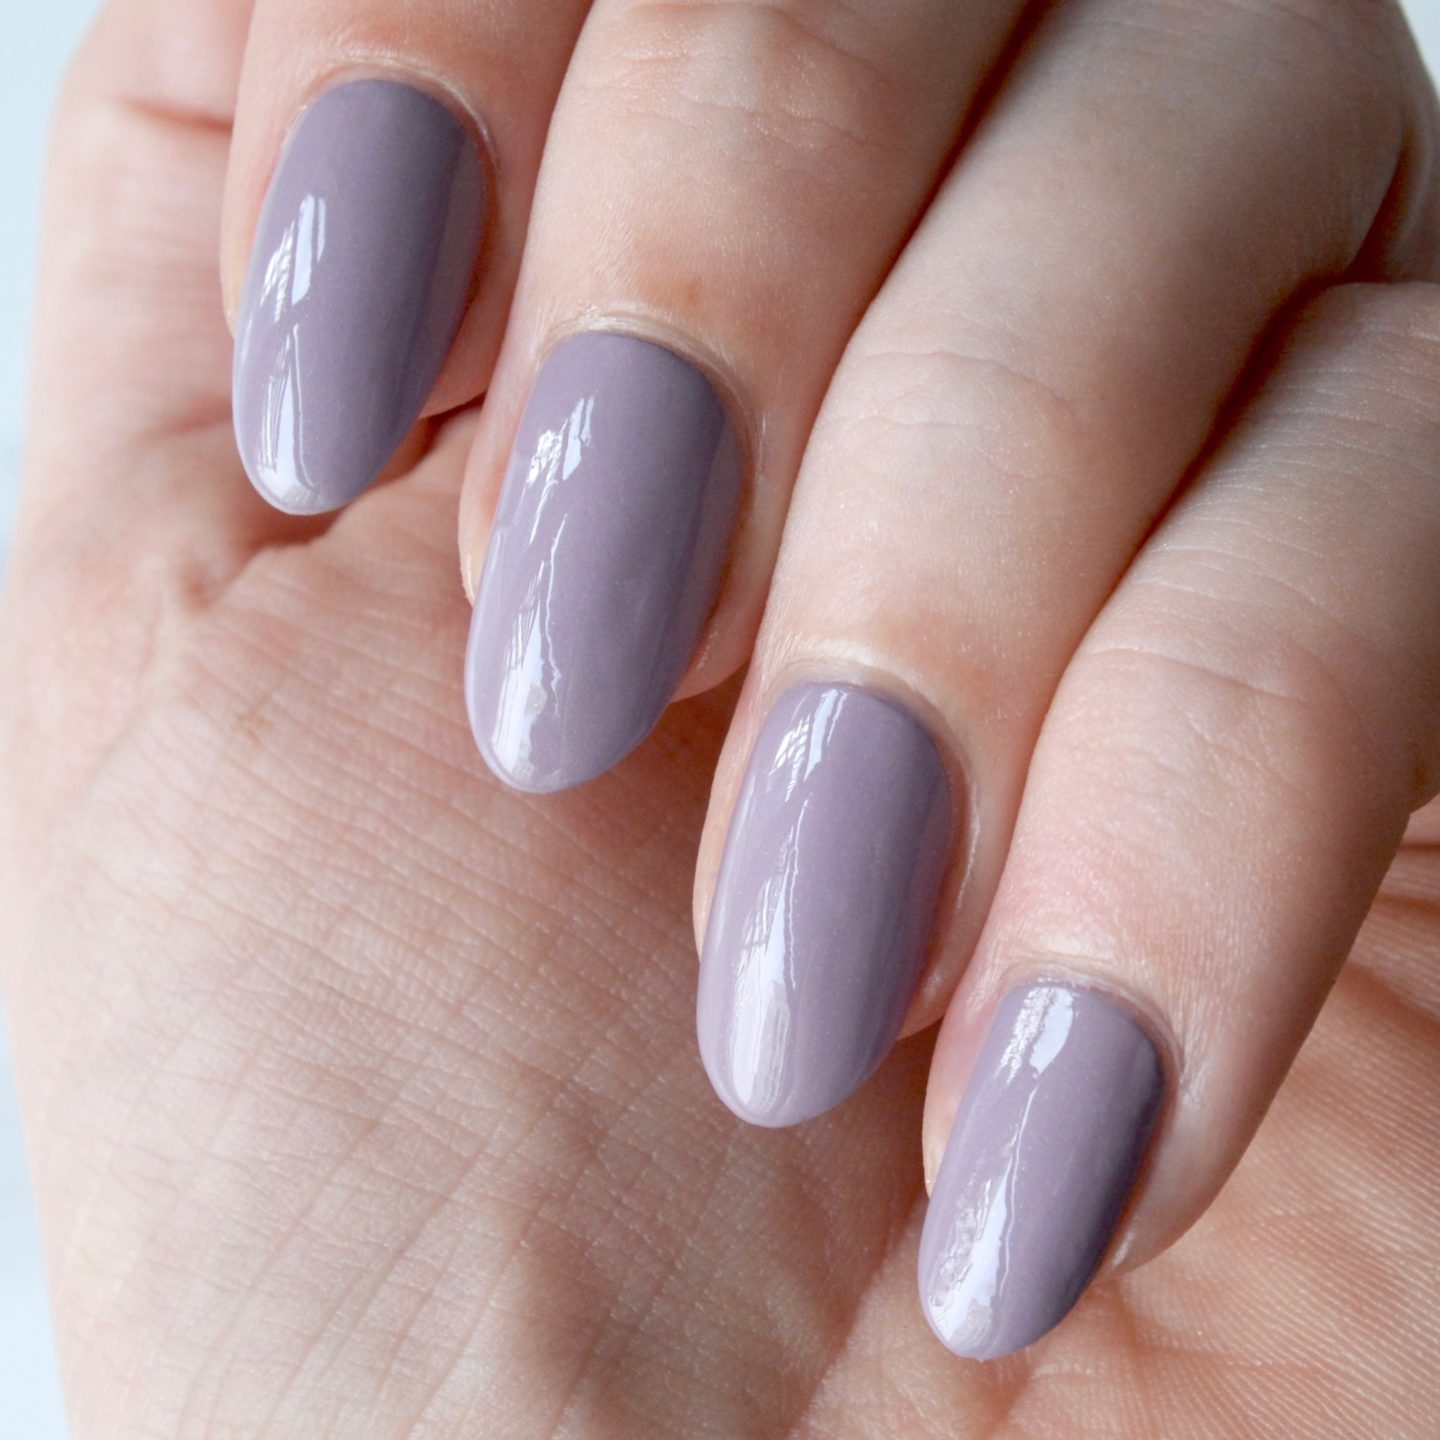 Essie x Rebecca Minkoff Leathers Collection 'Push The Envelope' (with topcoat)